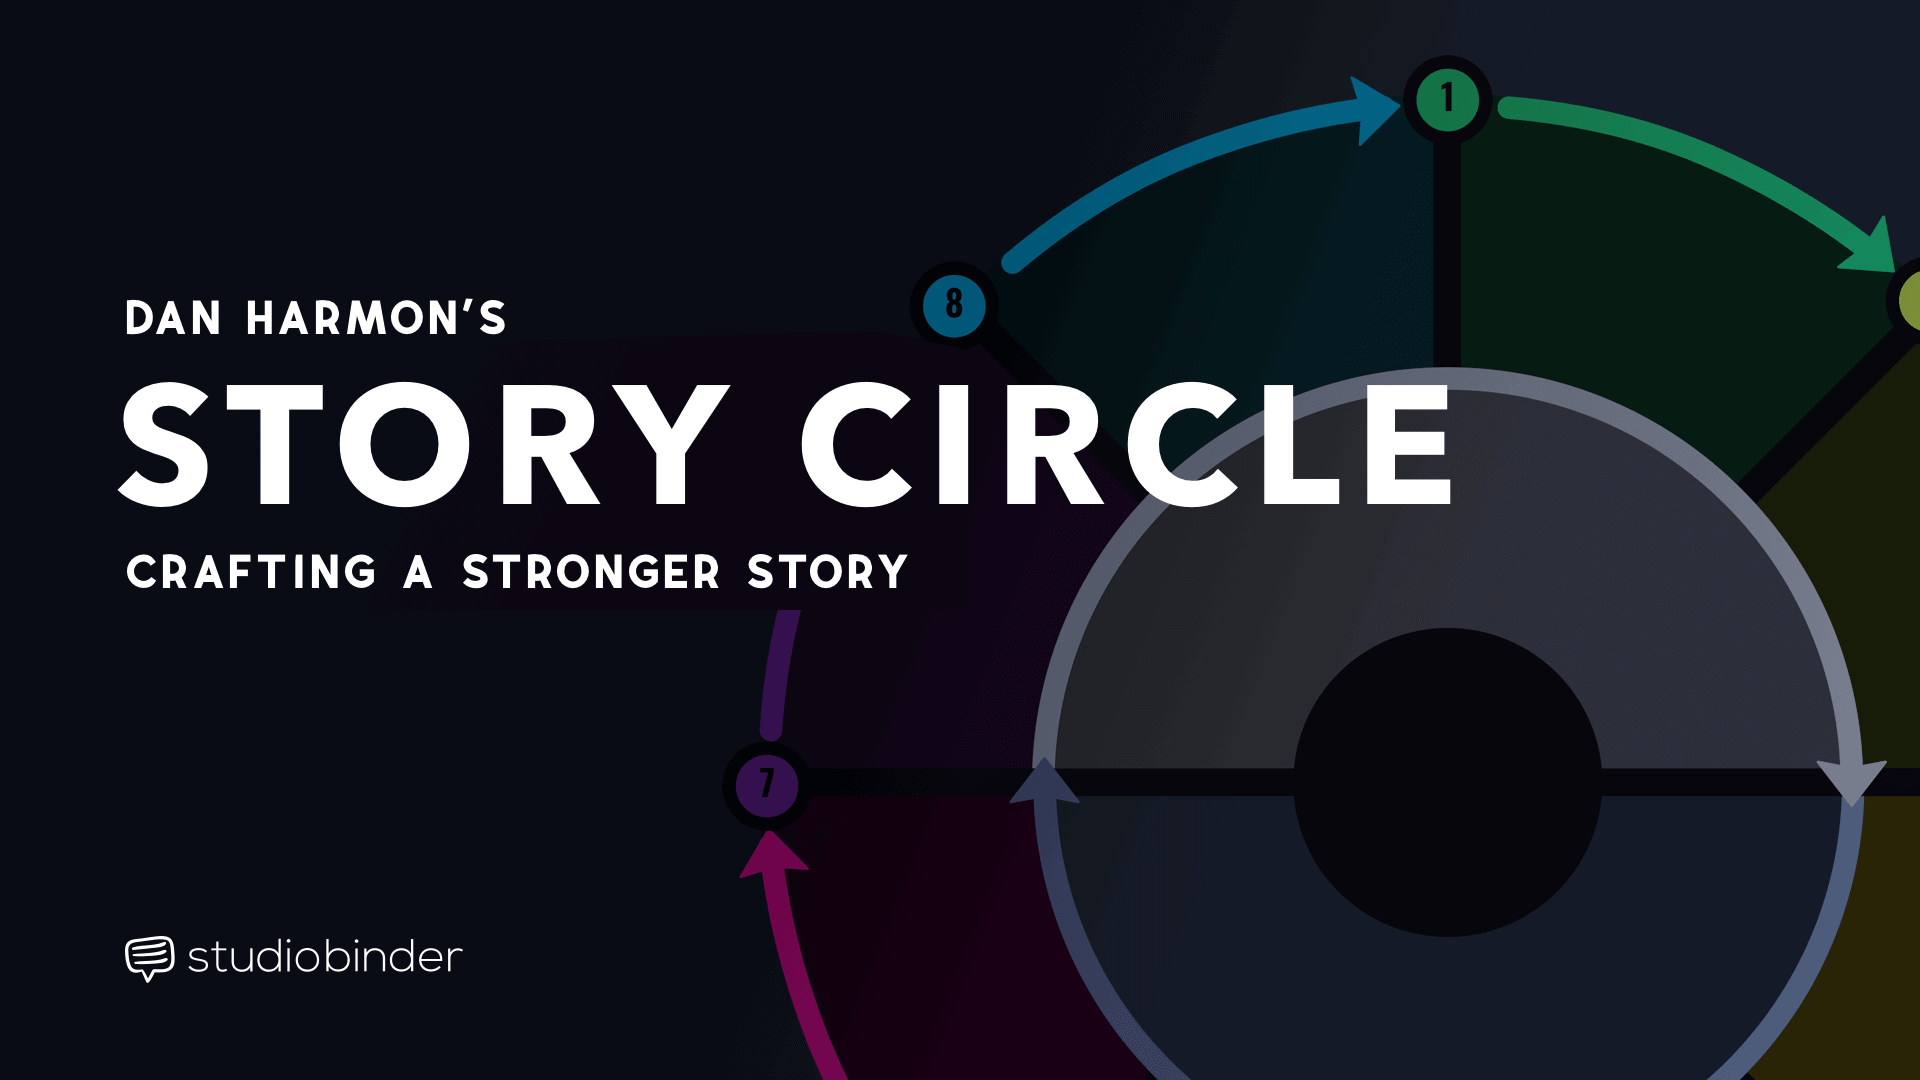 how dan harmon u0026 39 s story circle can make your story better